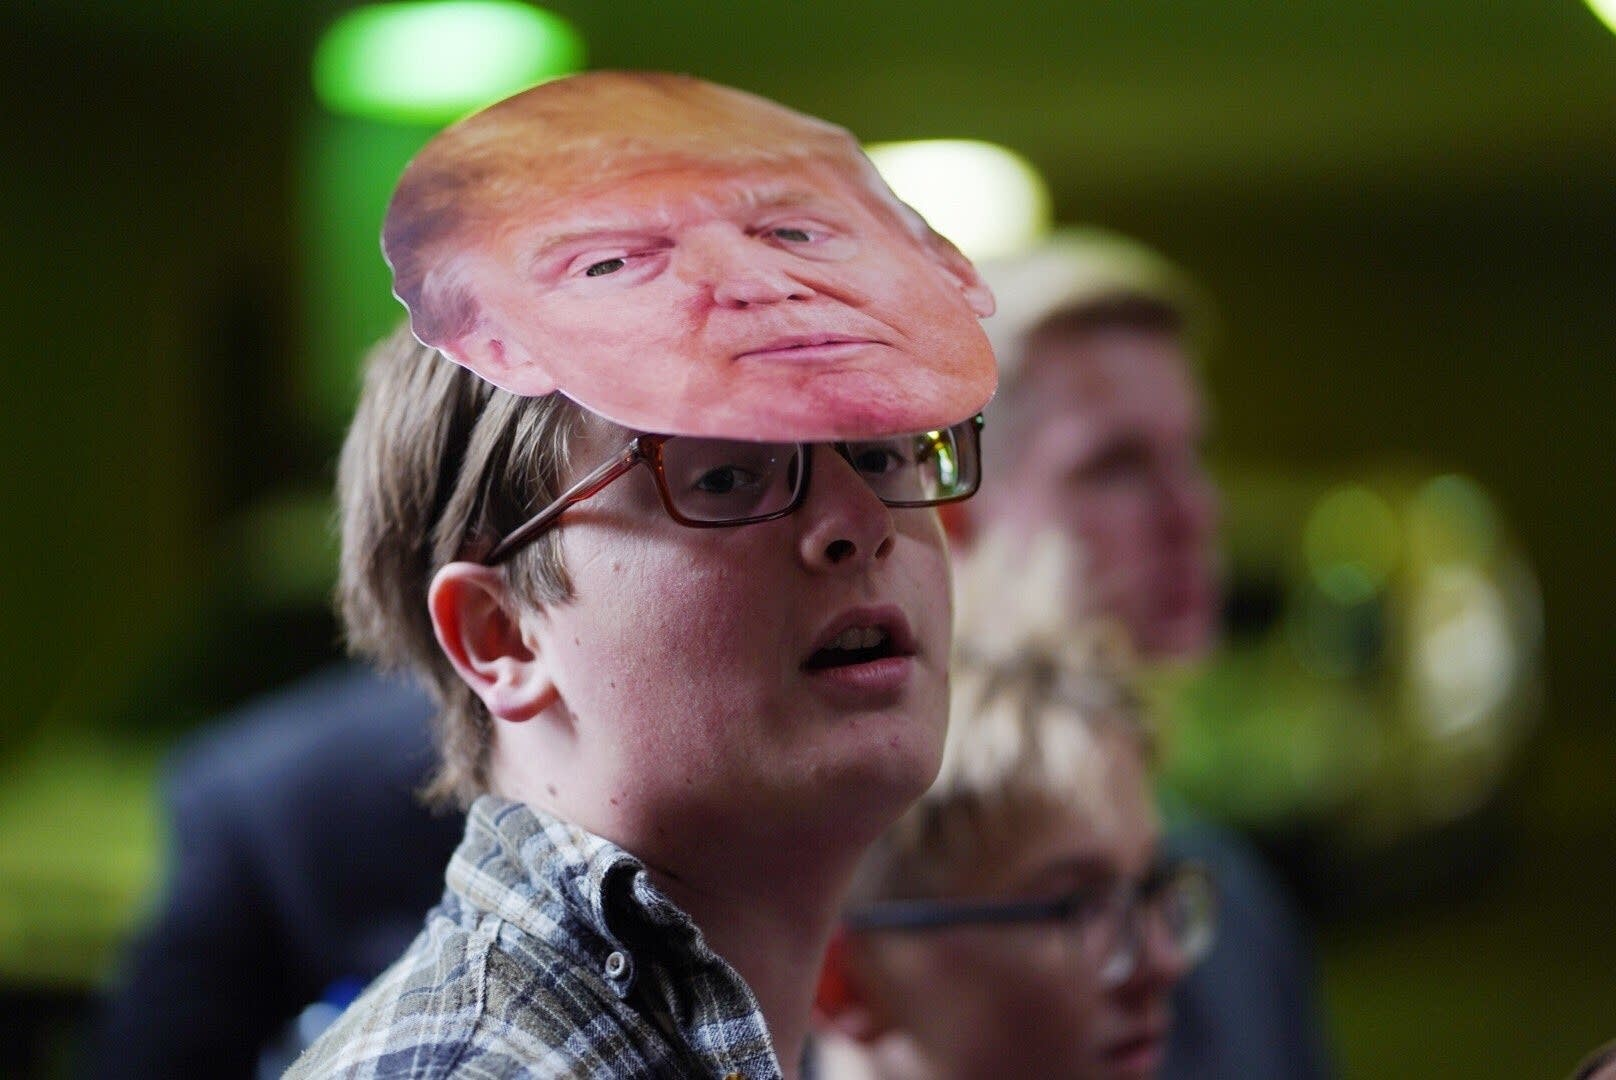 Thirteen-year-old Holden Dowd wears a Trump mask.